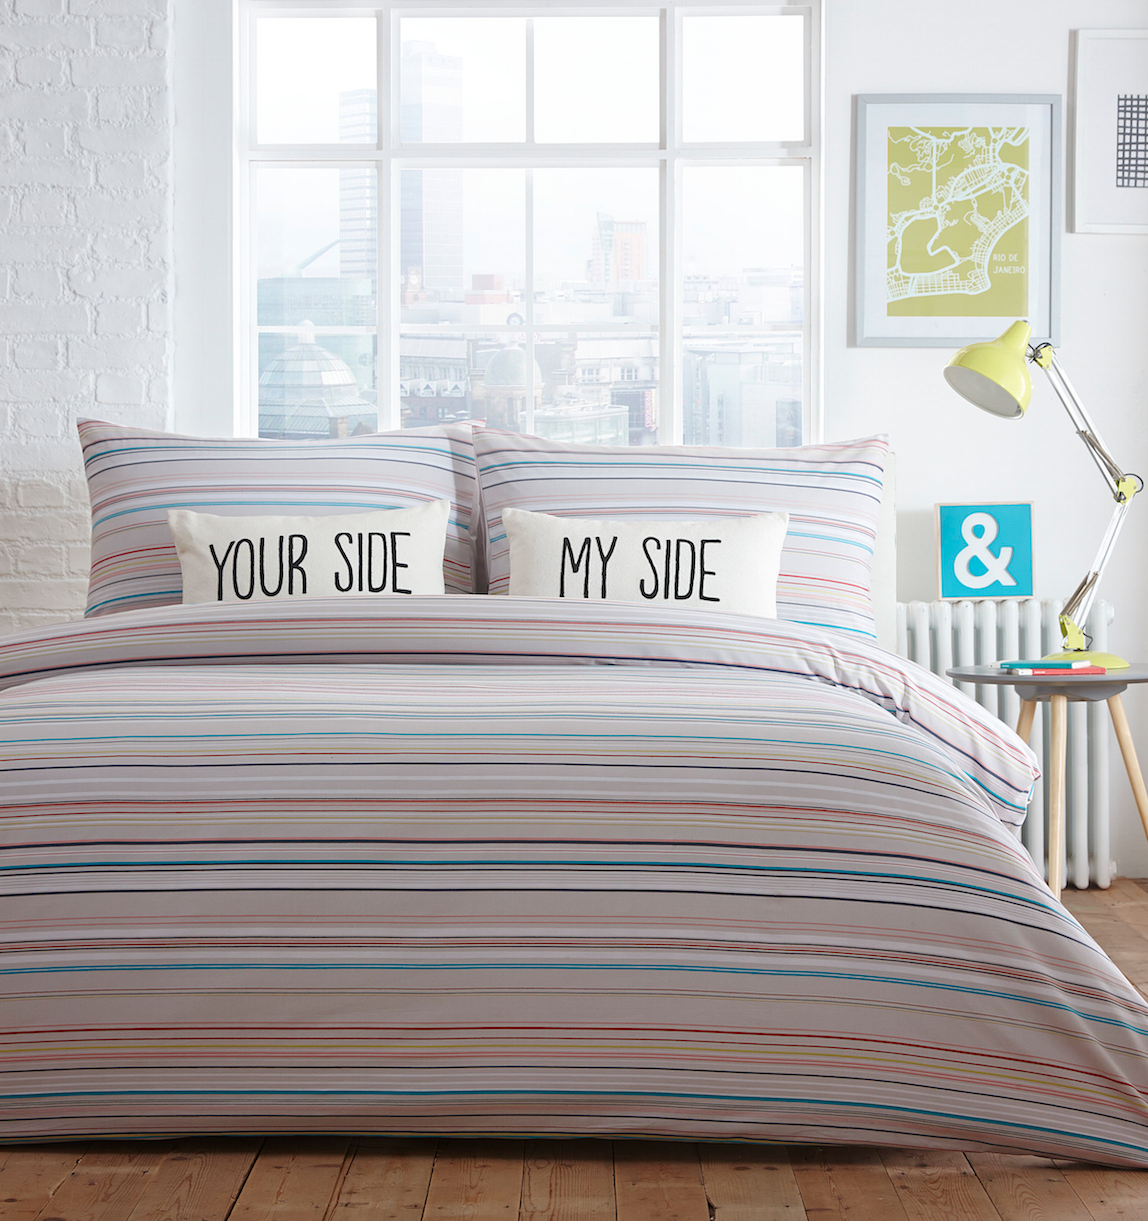 Homeware lizzie lees boston stripe bedding gumiabroncs Image collections